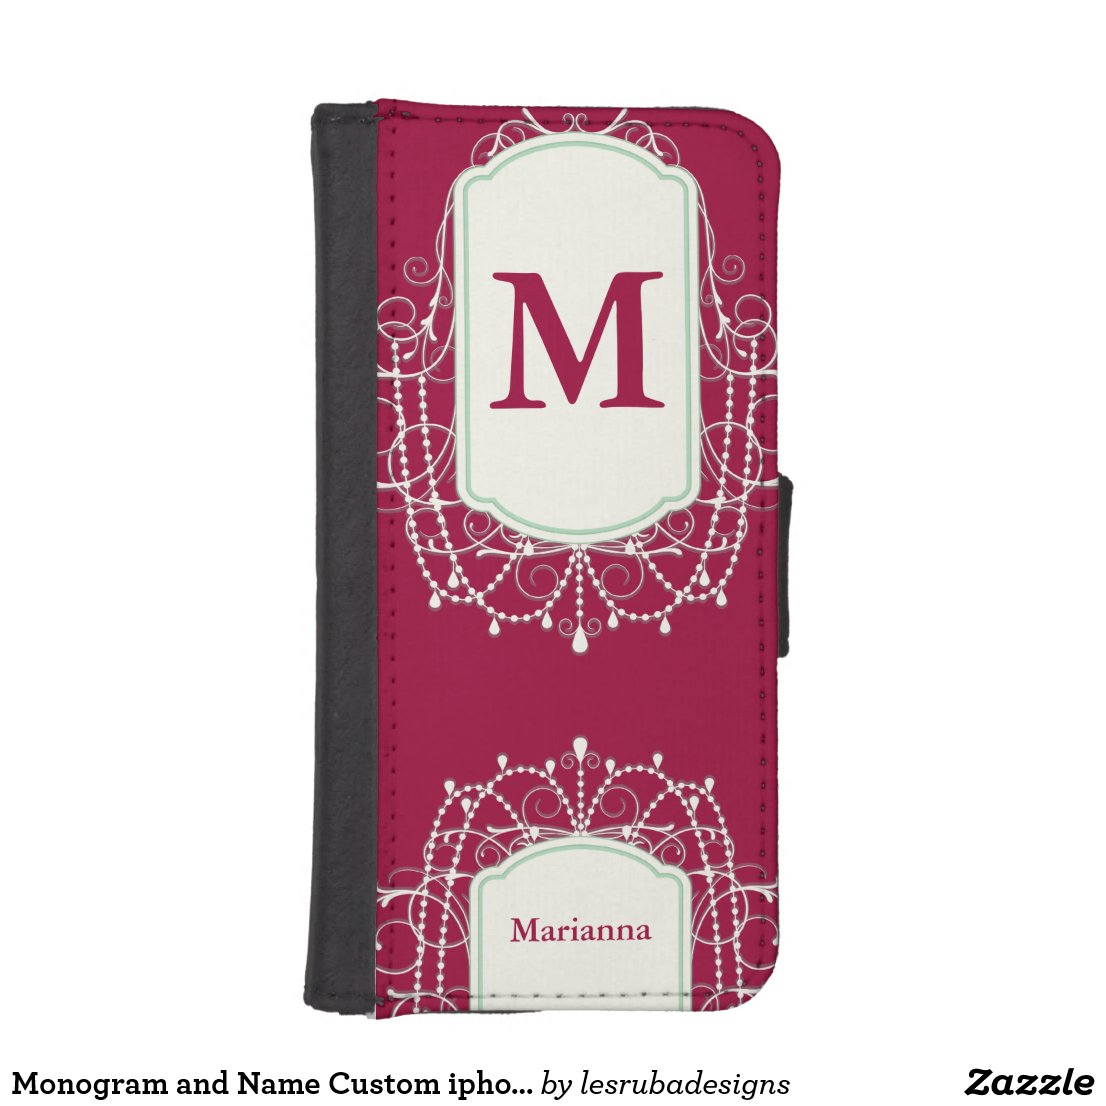 Monogram and Name Custom iphone Wallet